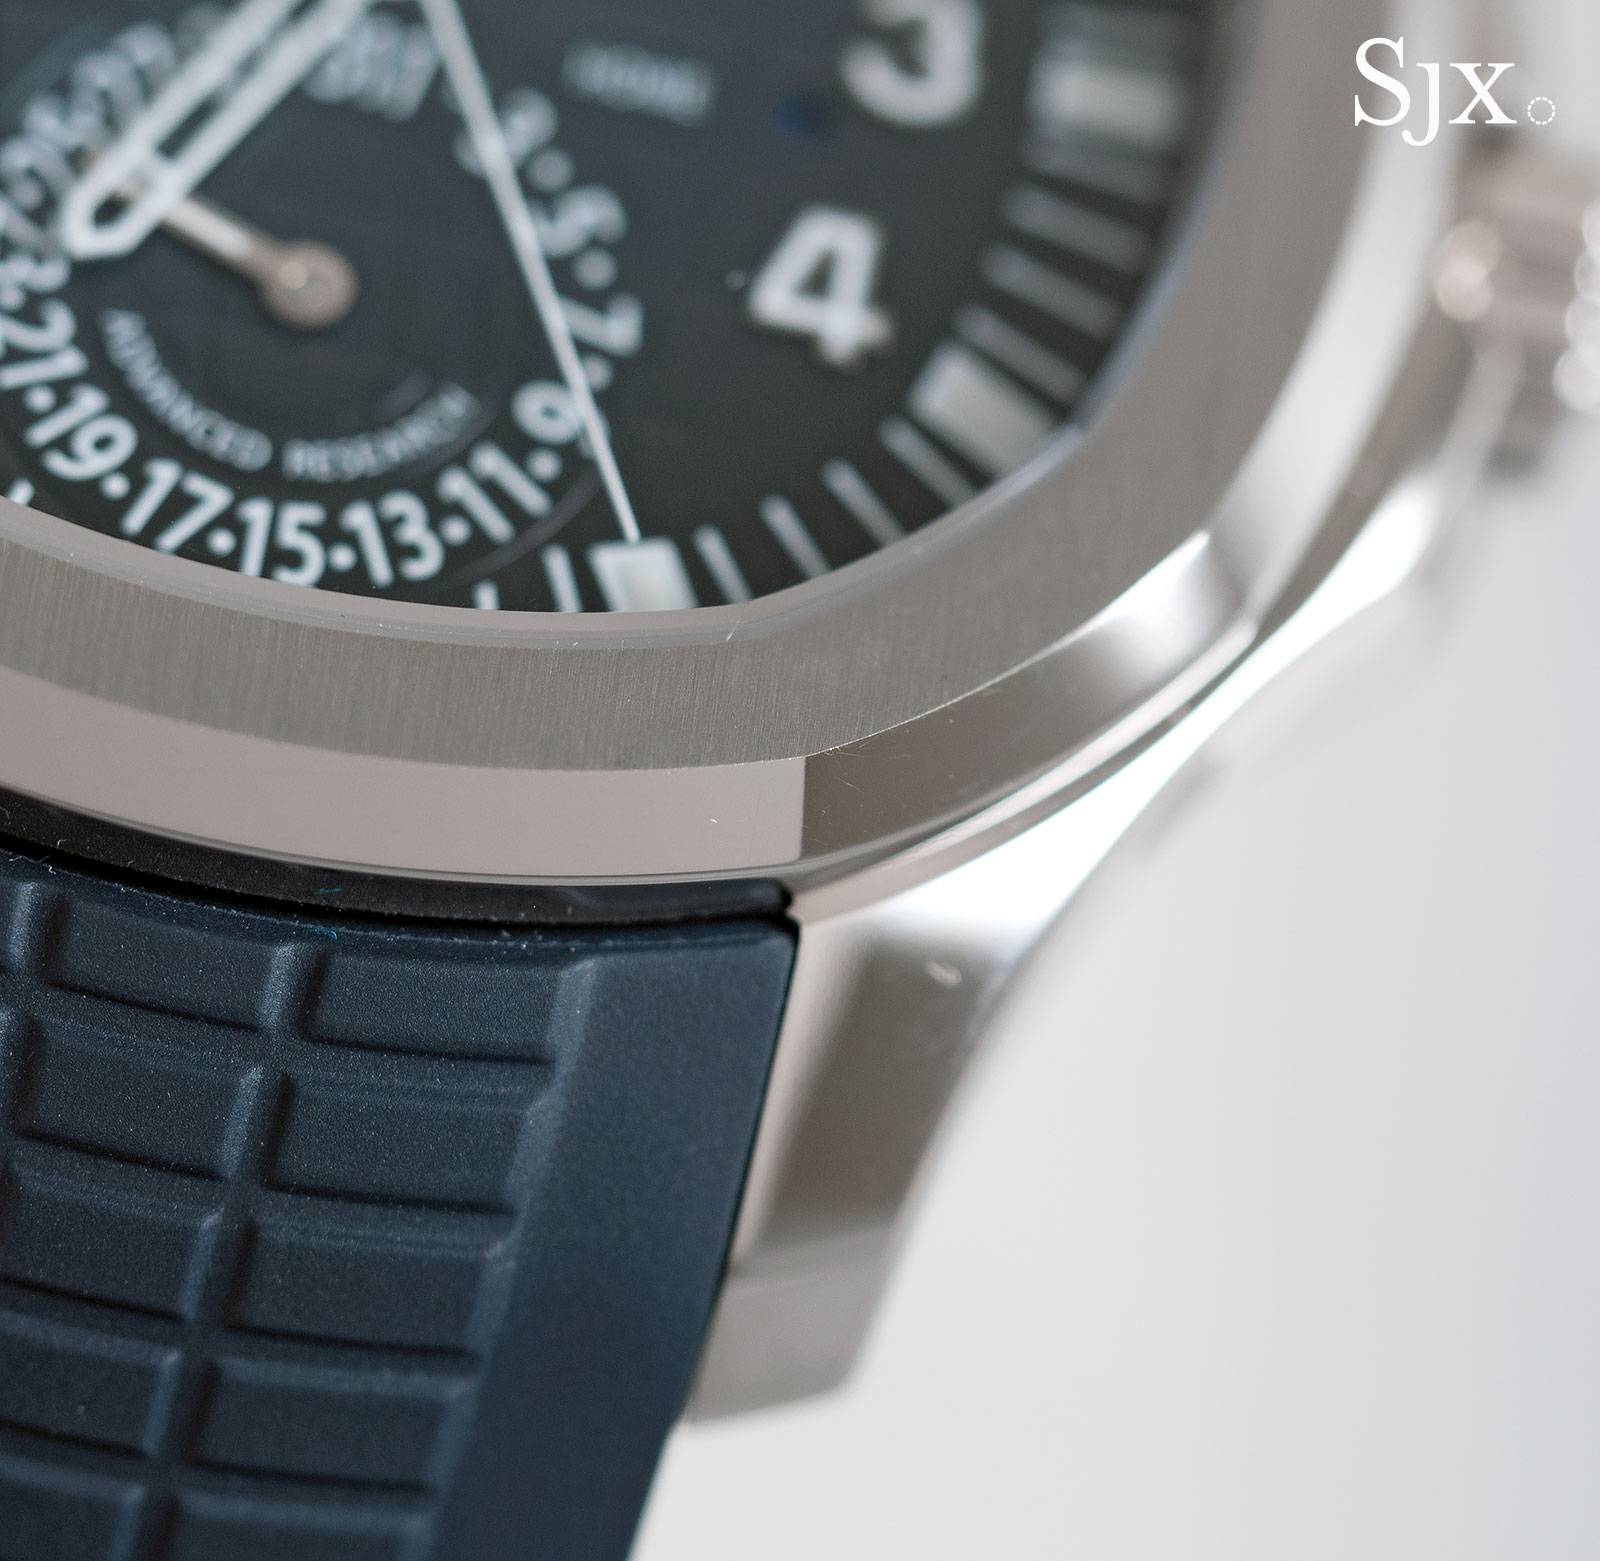 Patek Aquanaut 5650G Advanced Research 12